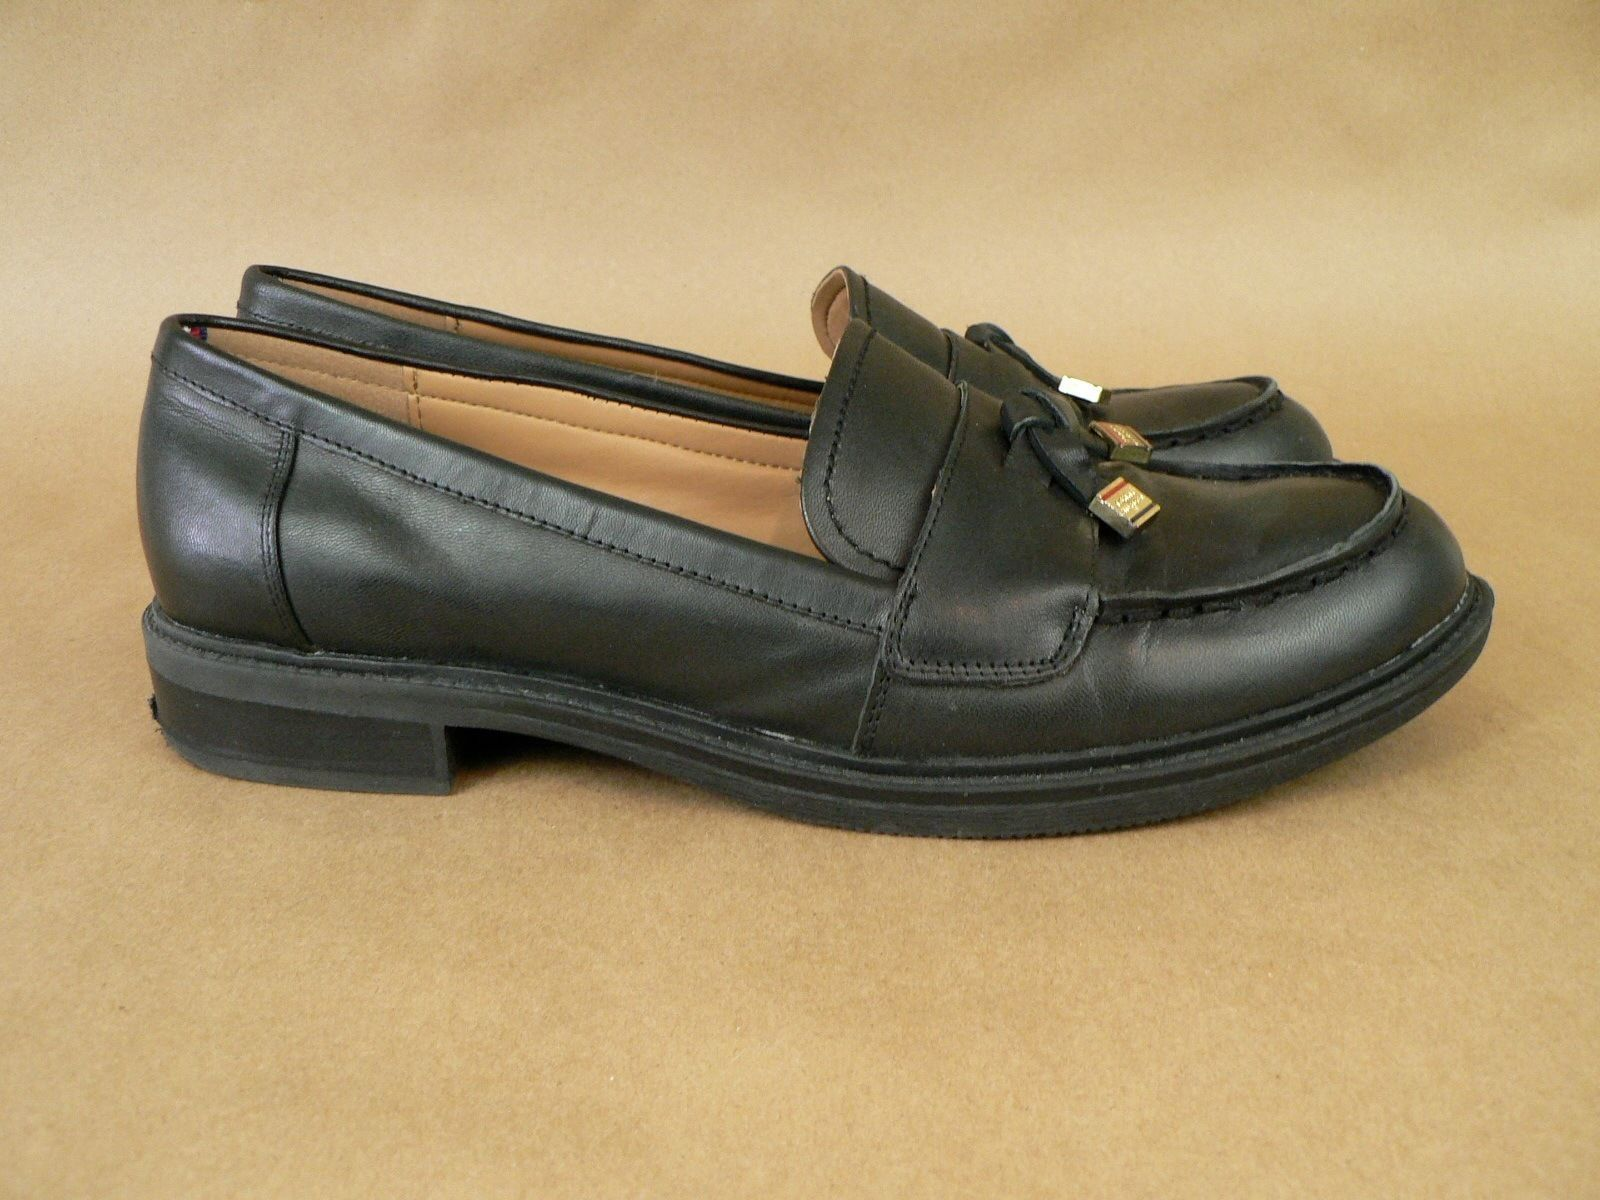 a0cf6e54eb5d Tommy Hilfiger Womens Black Leather Slip On Loafers Shoes Size 10M Gold  Tassels